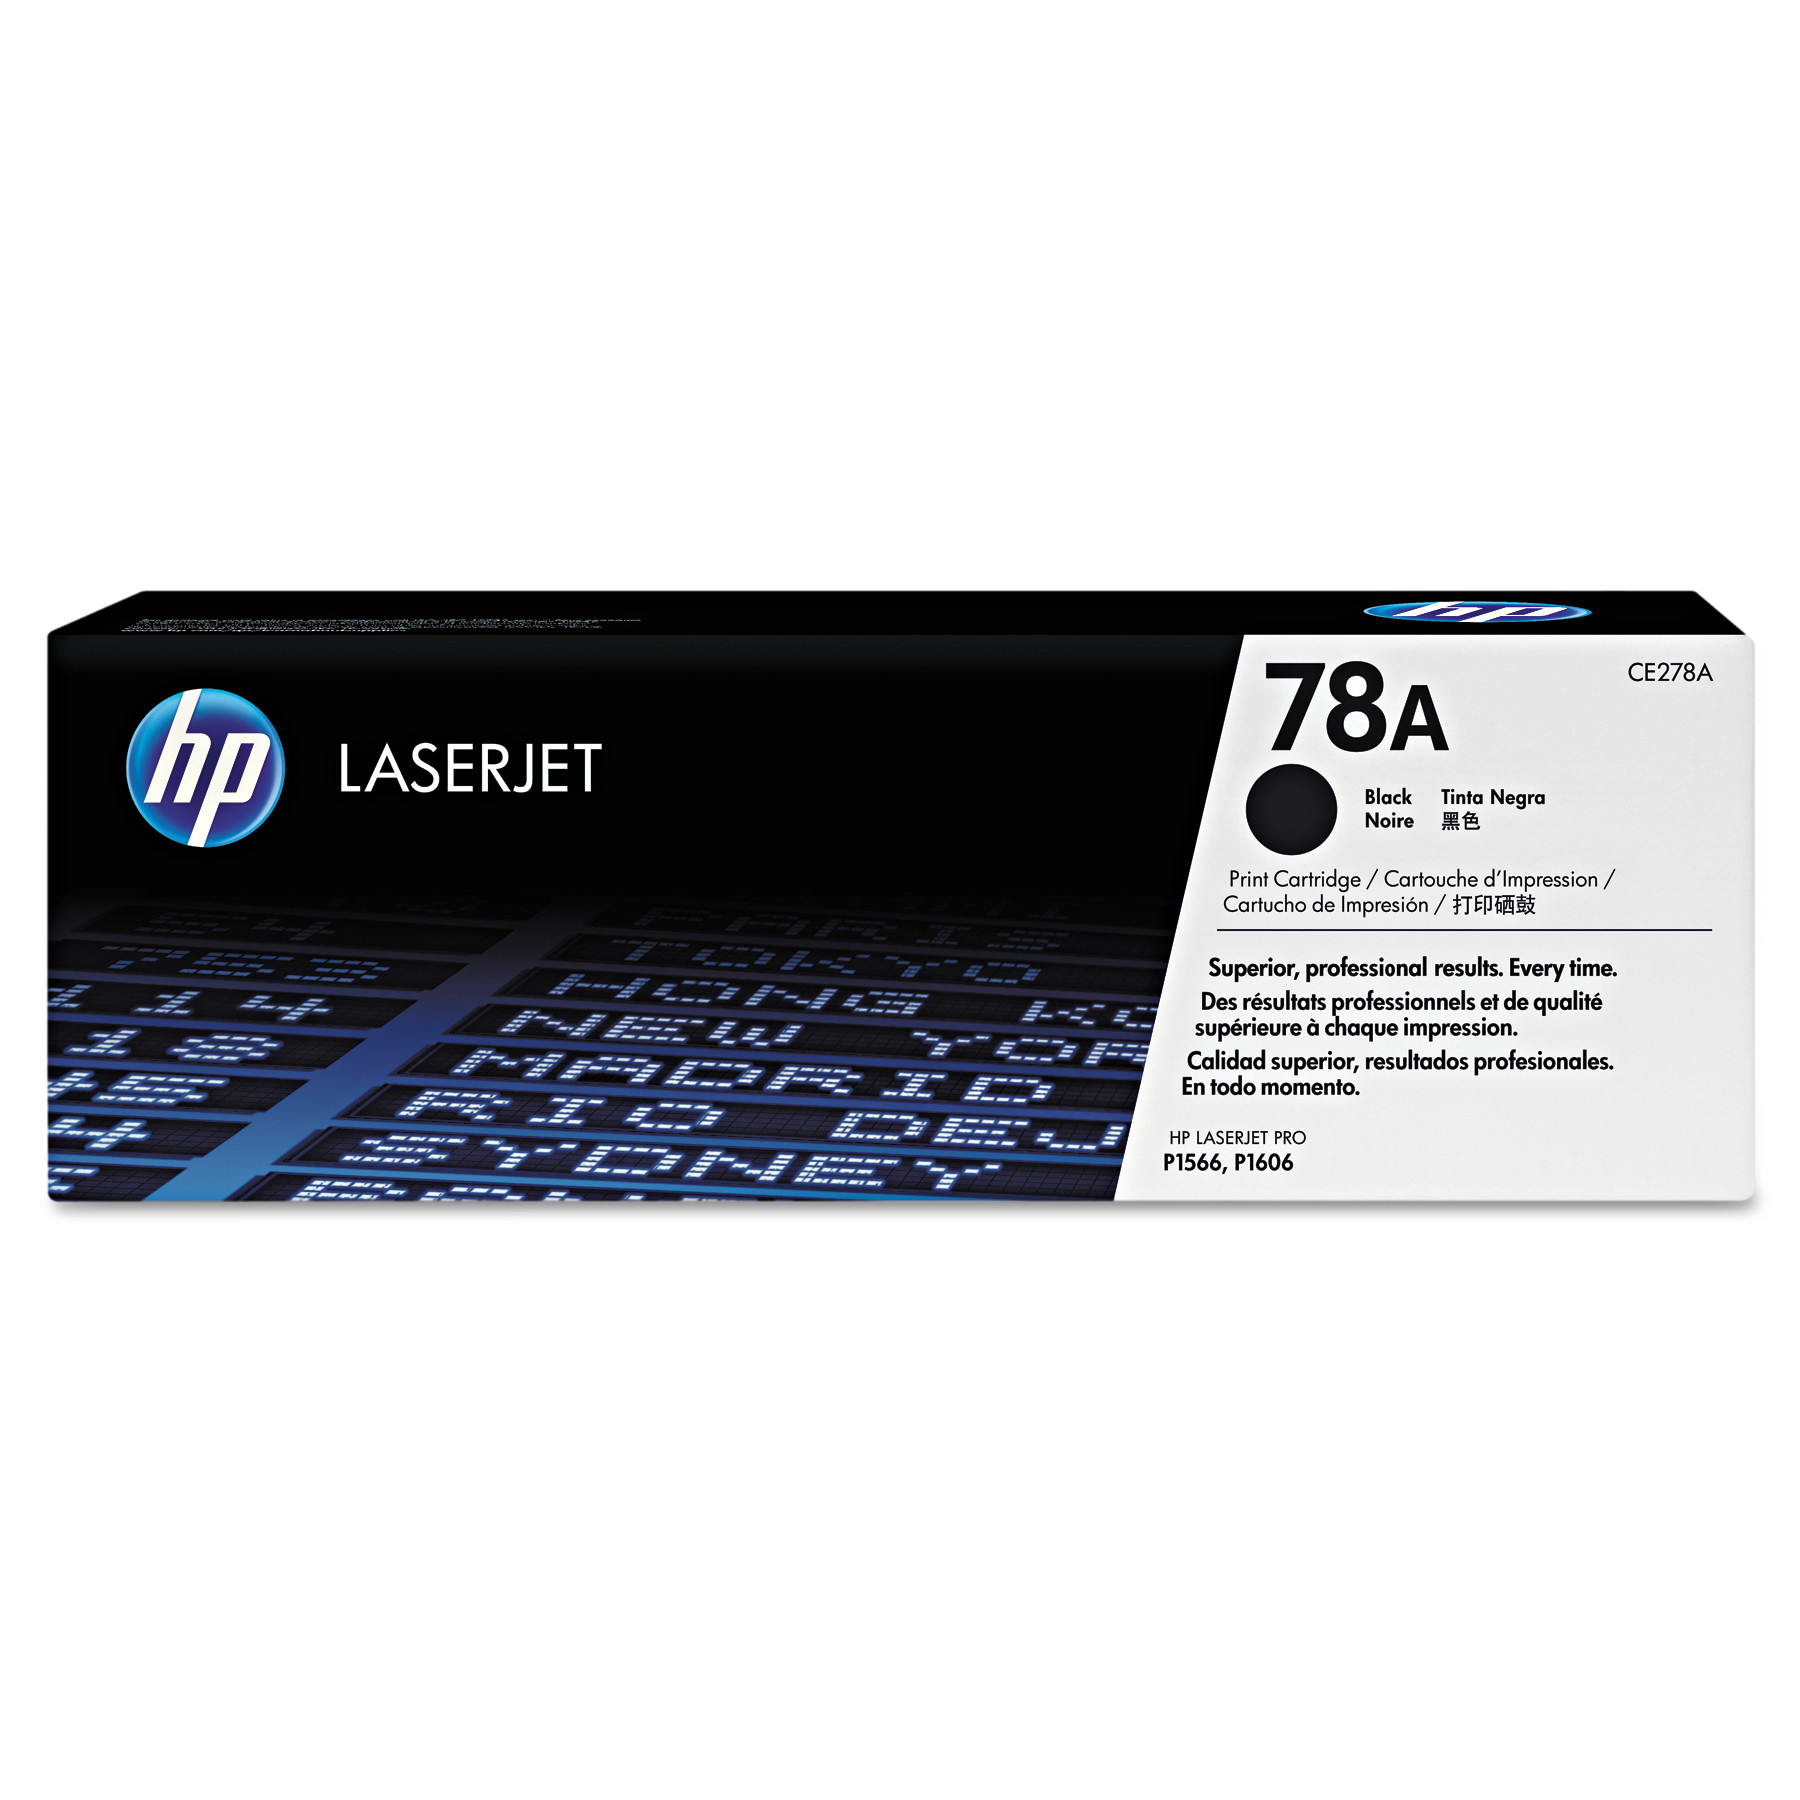 HP 78A Black Original LJ Toner Cartridge (CE278A)